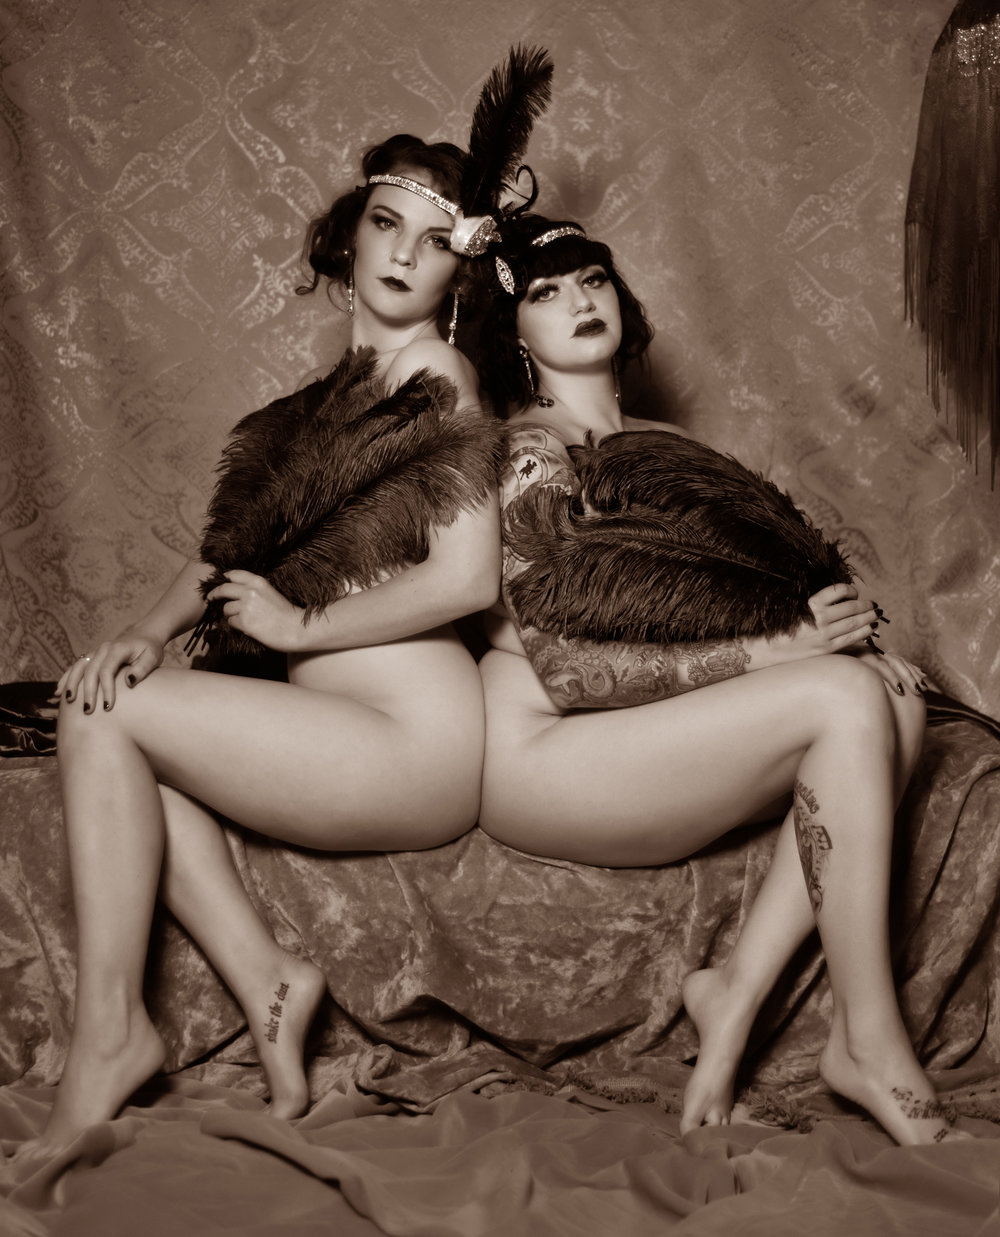 Vintage Photographer Denver 1920s Style by La Photographie 05.jpg